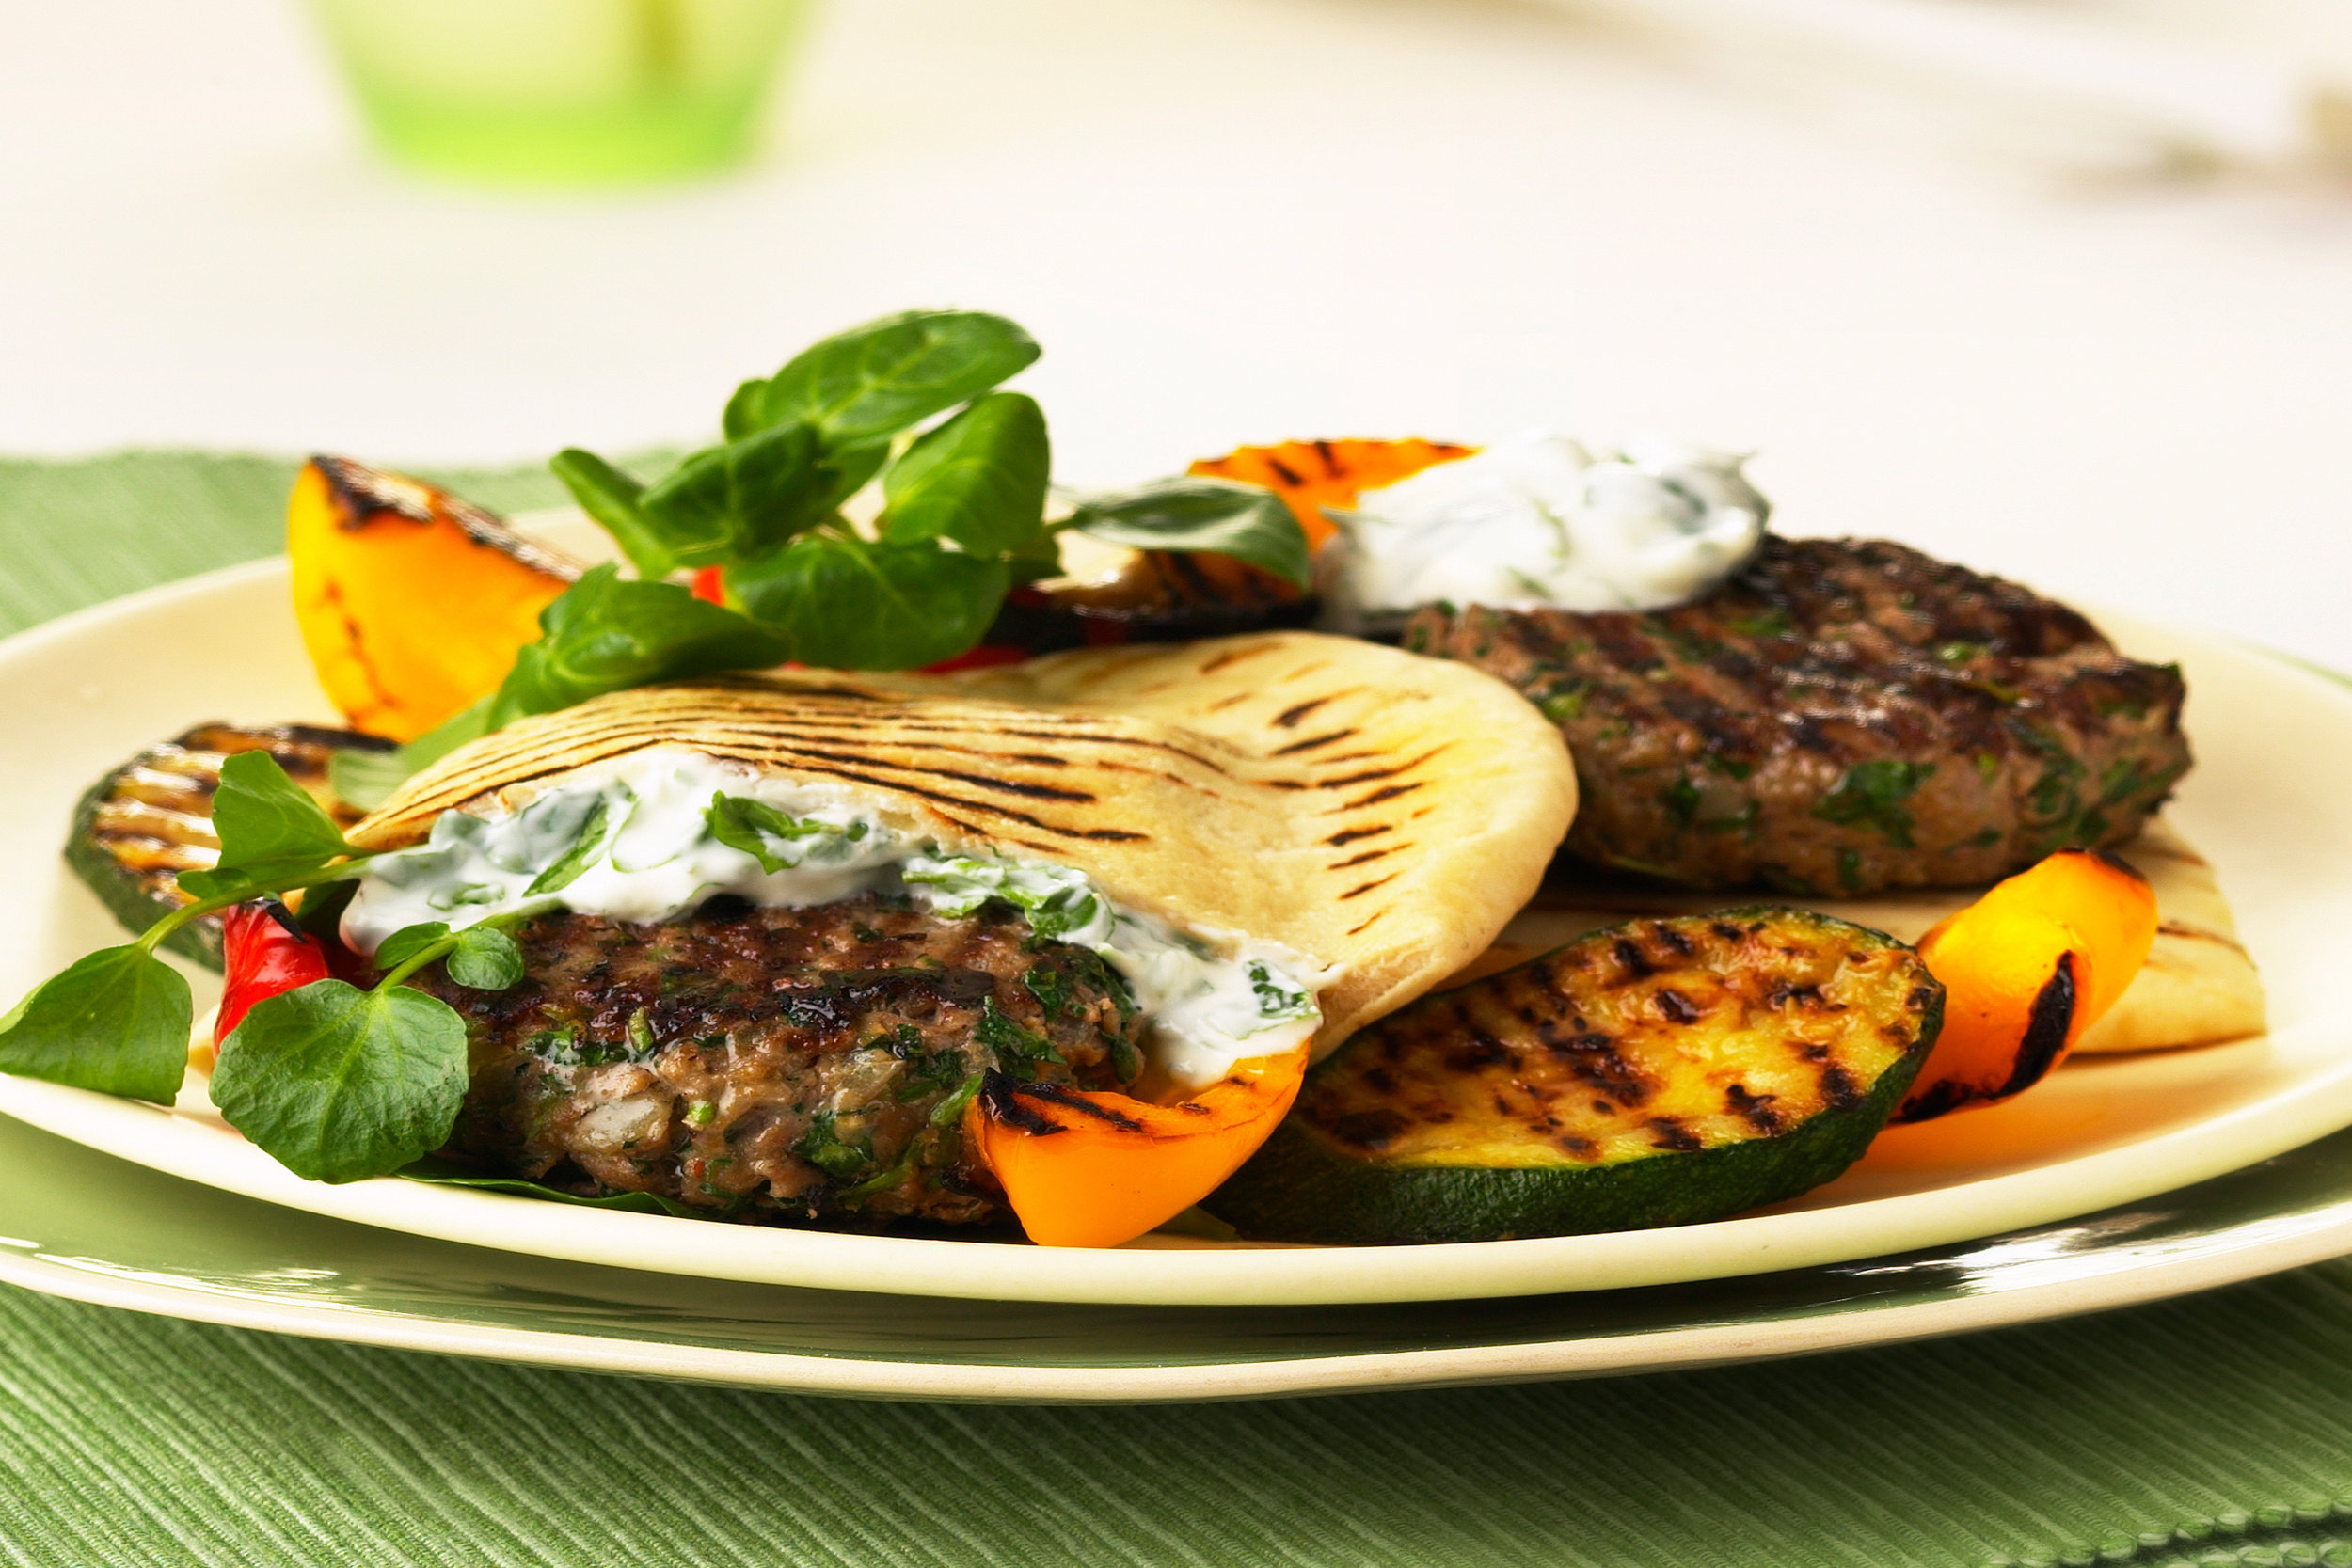 Health Conscious - These dishes have been created with nutrition firmly in focus, whether that be with high protein levels, low fat content, or low sugar content.